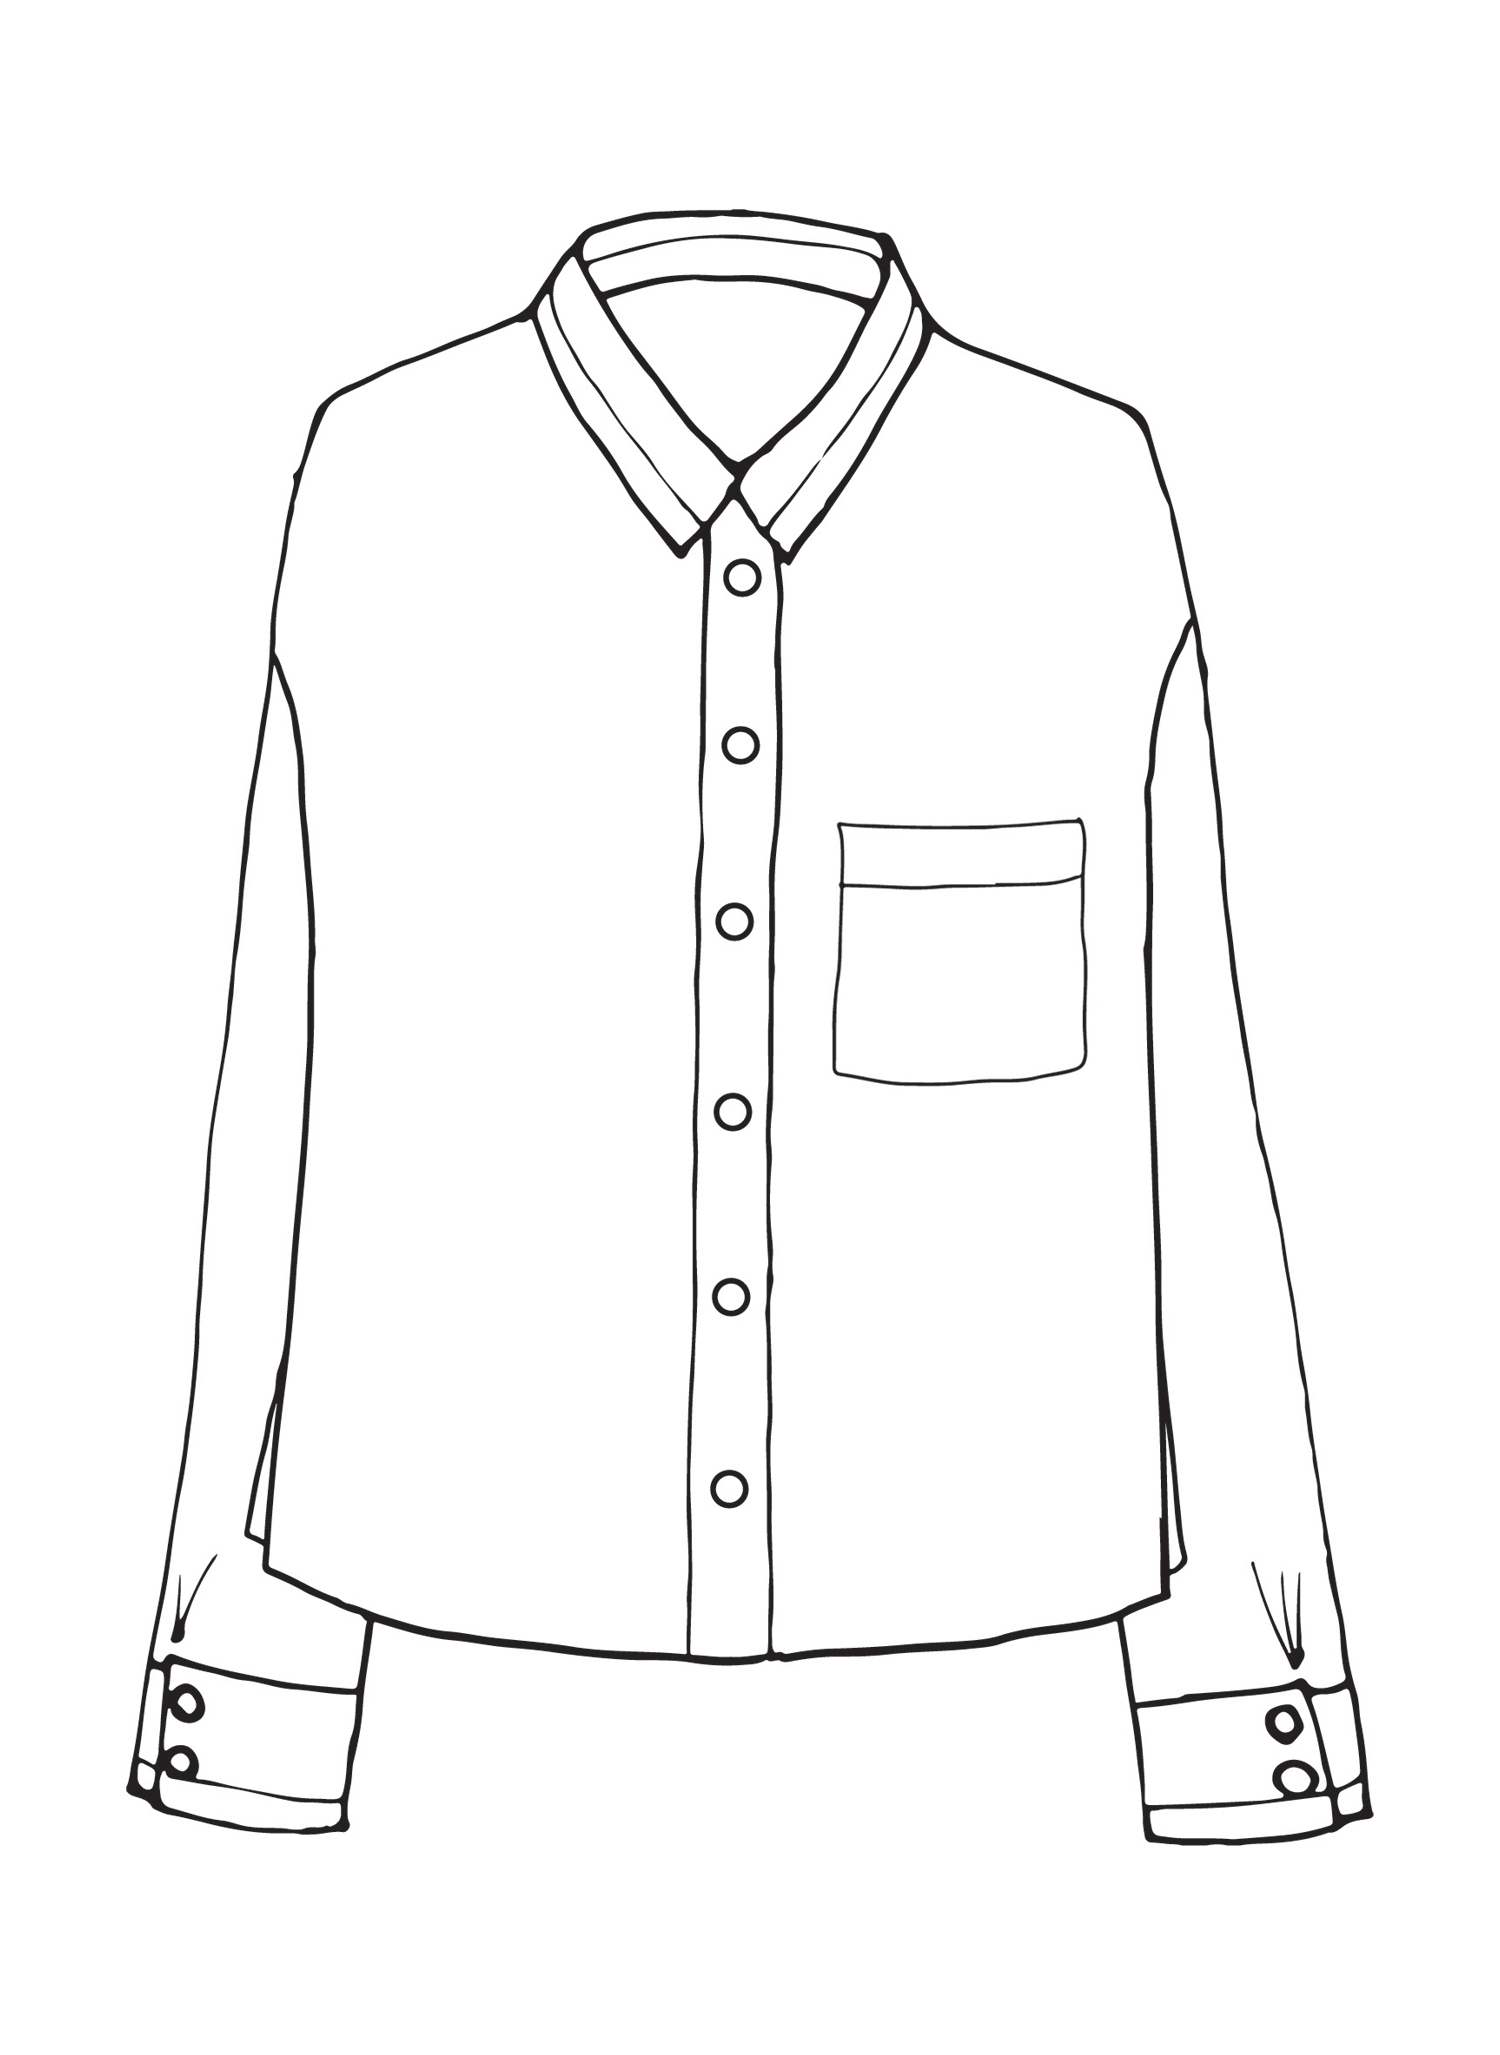 Theo Shirt sketch image